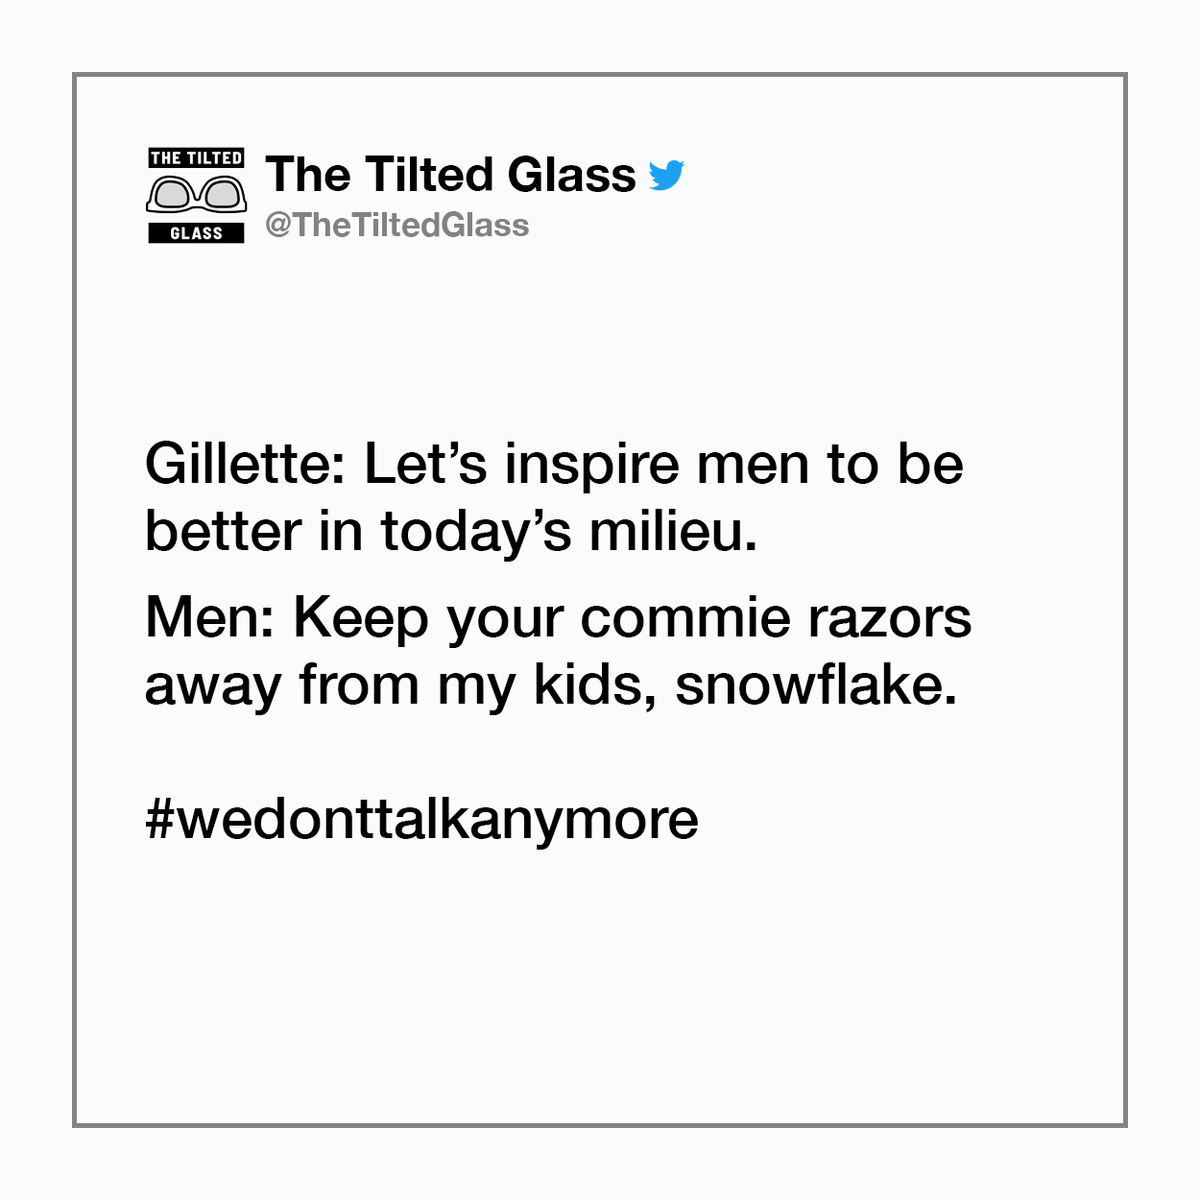 The Best Men Can Be - Gillette